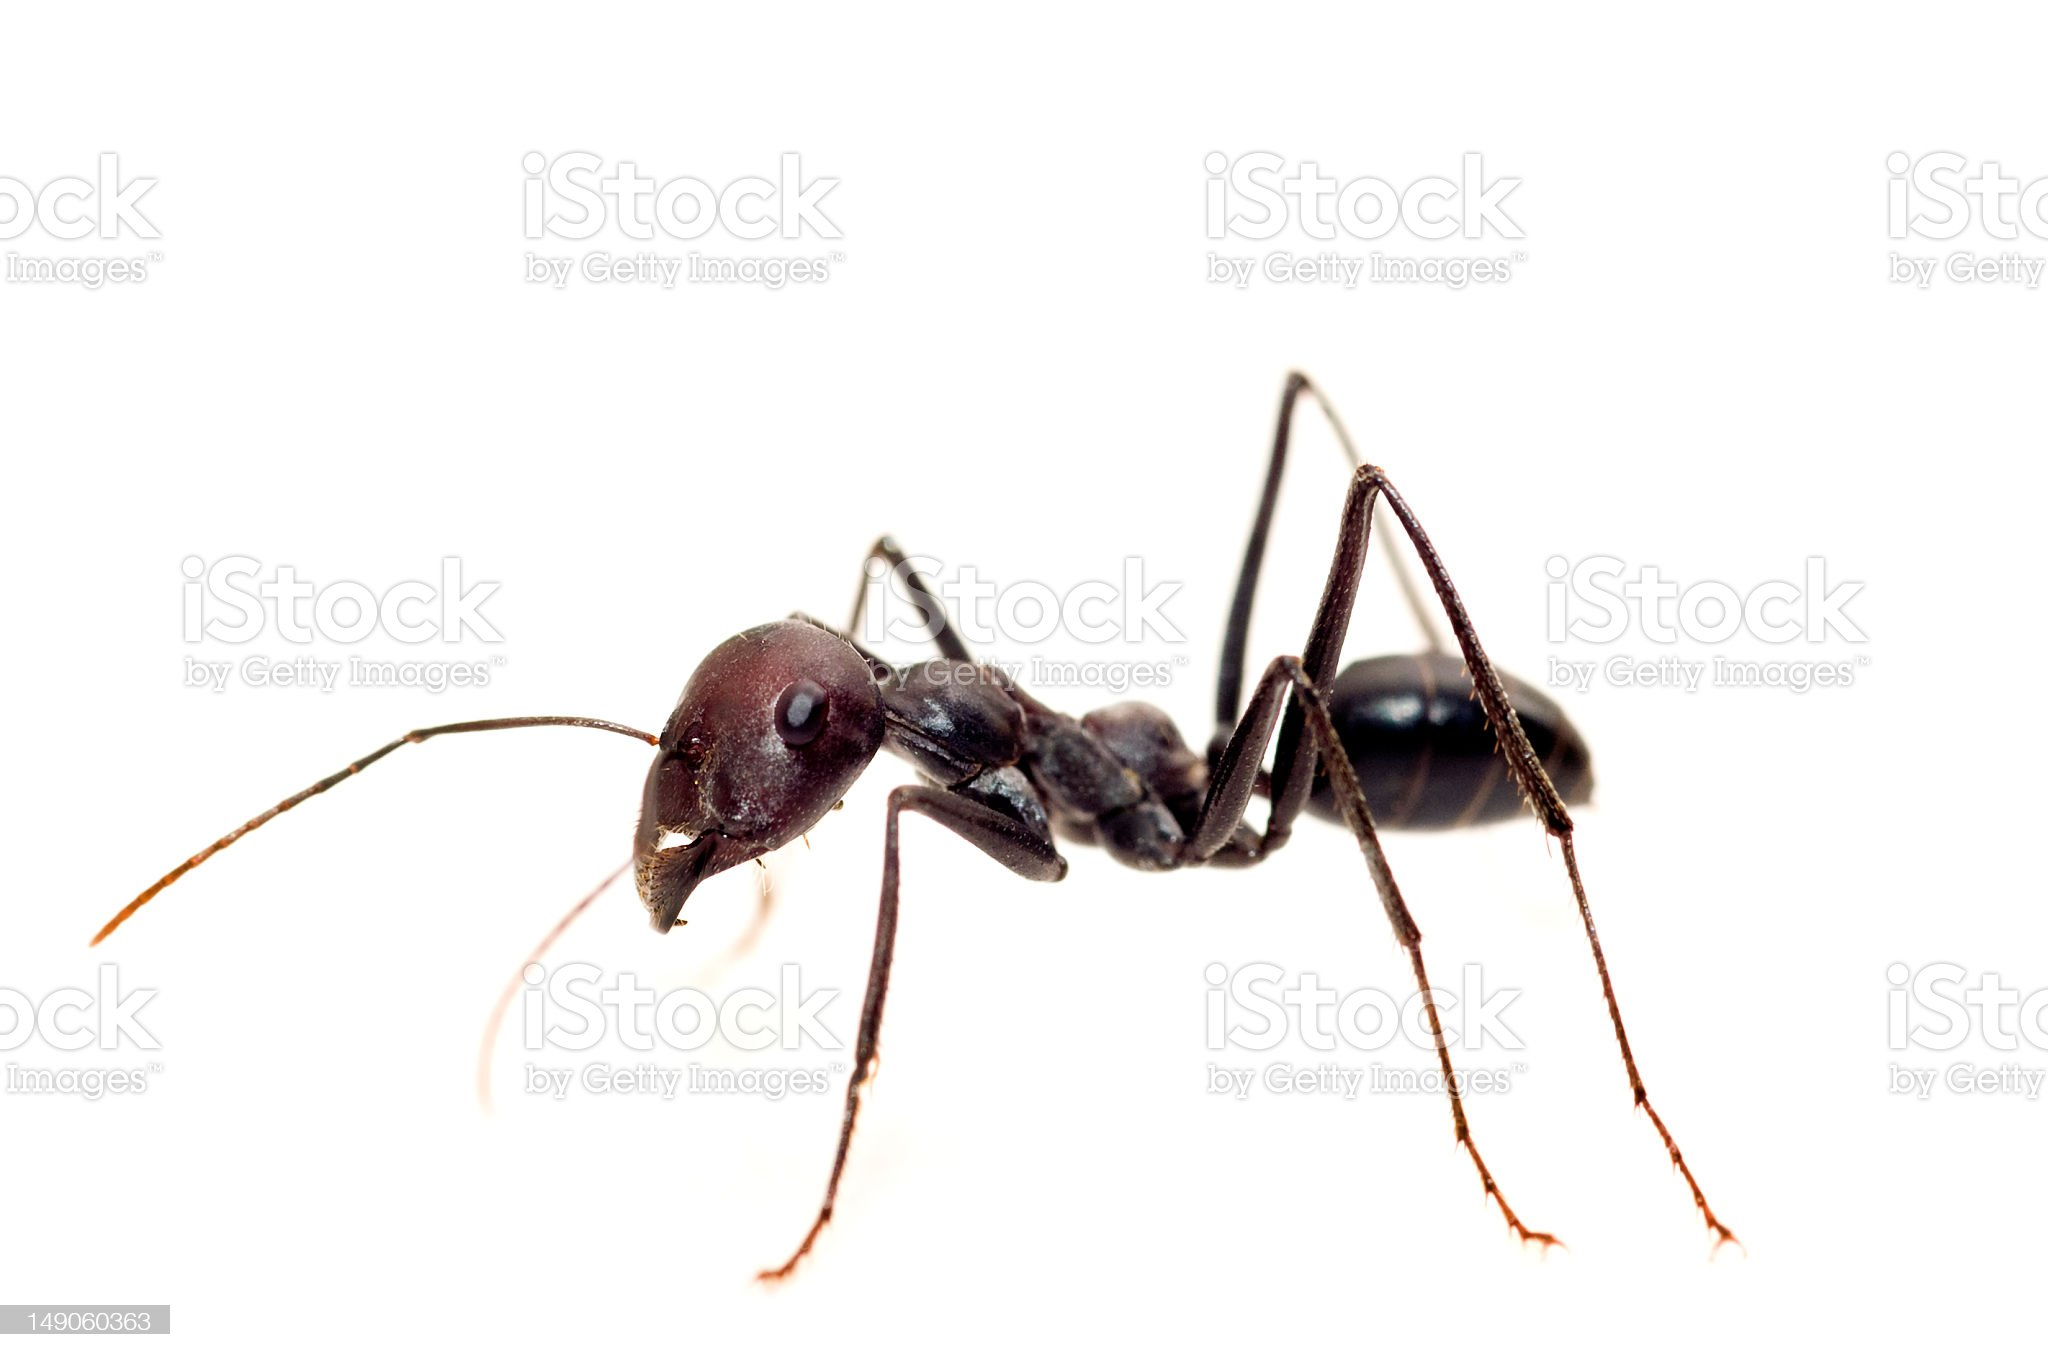 A black isolated ant against a white background royalty-free stock photo